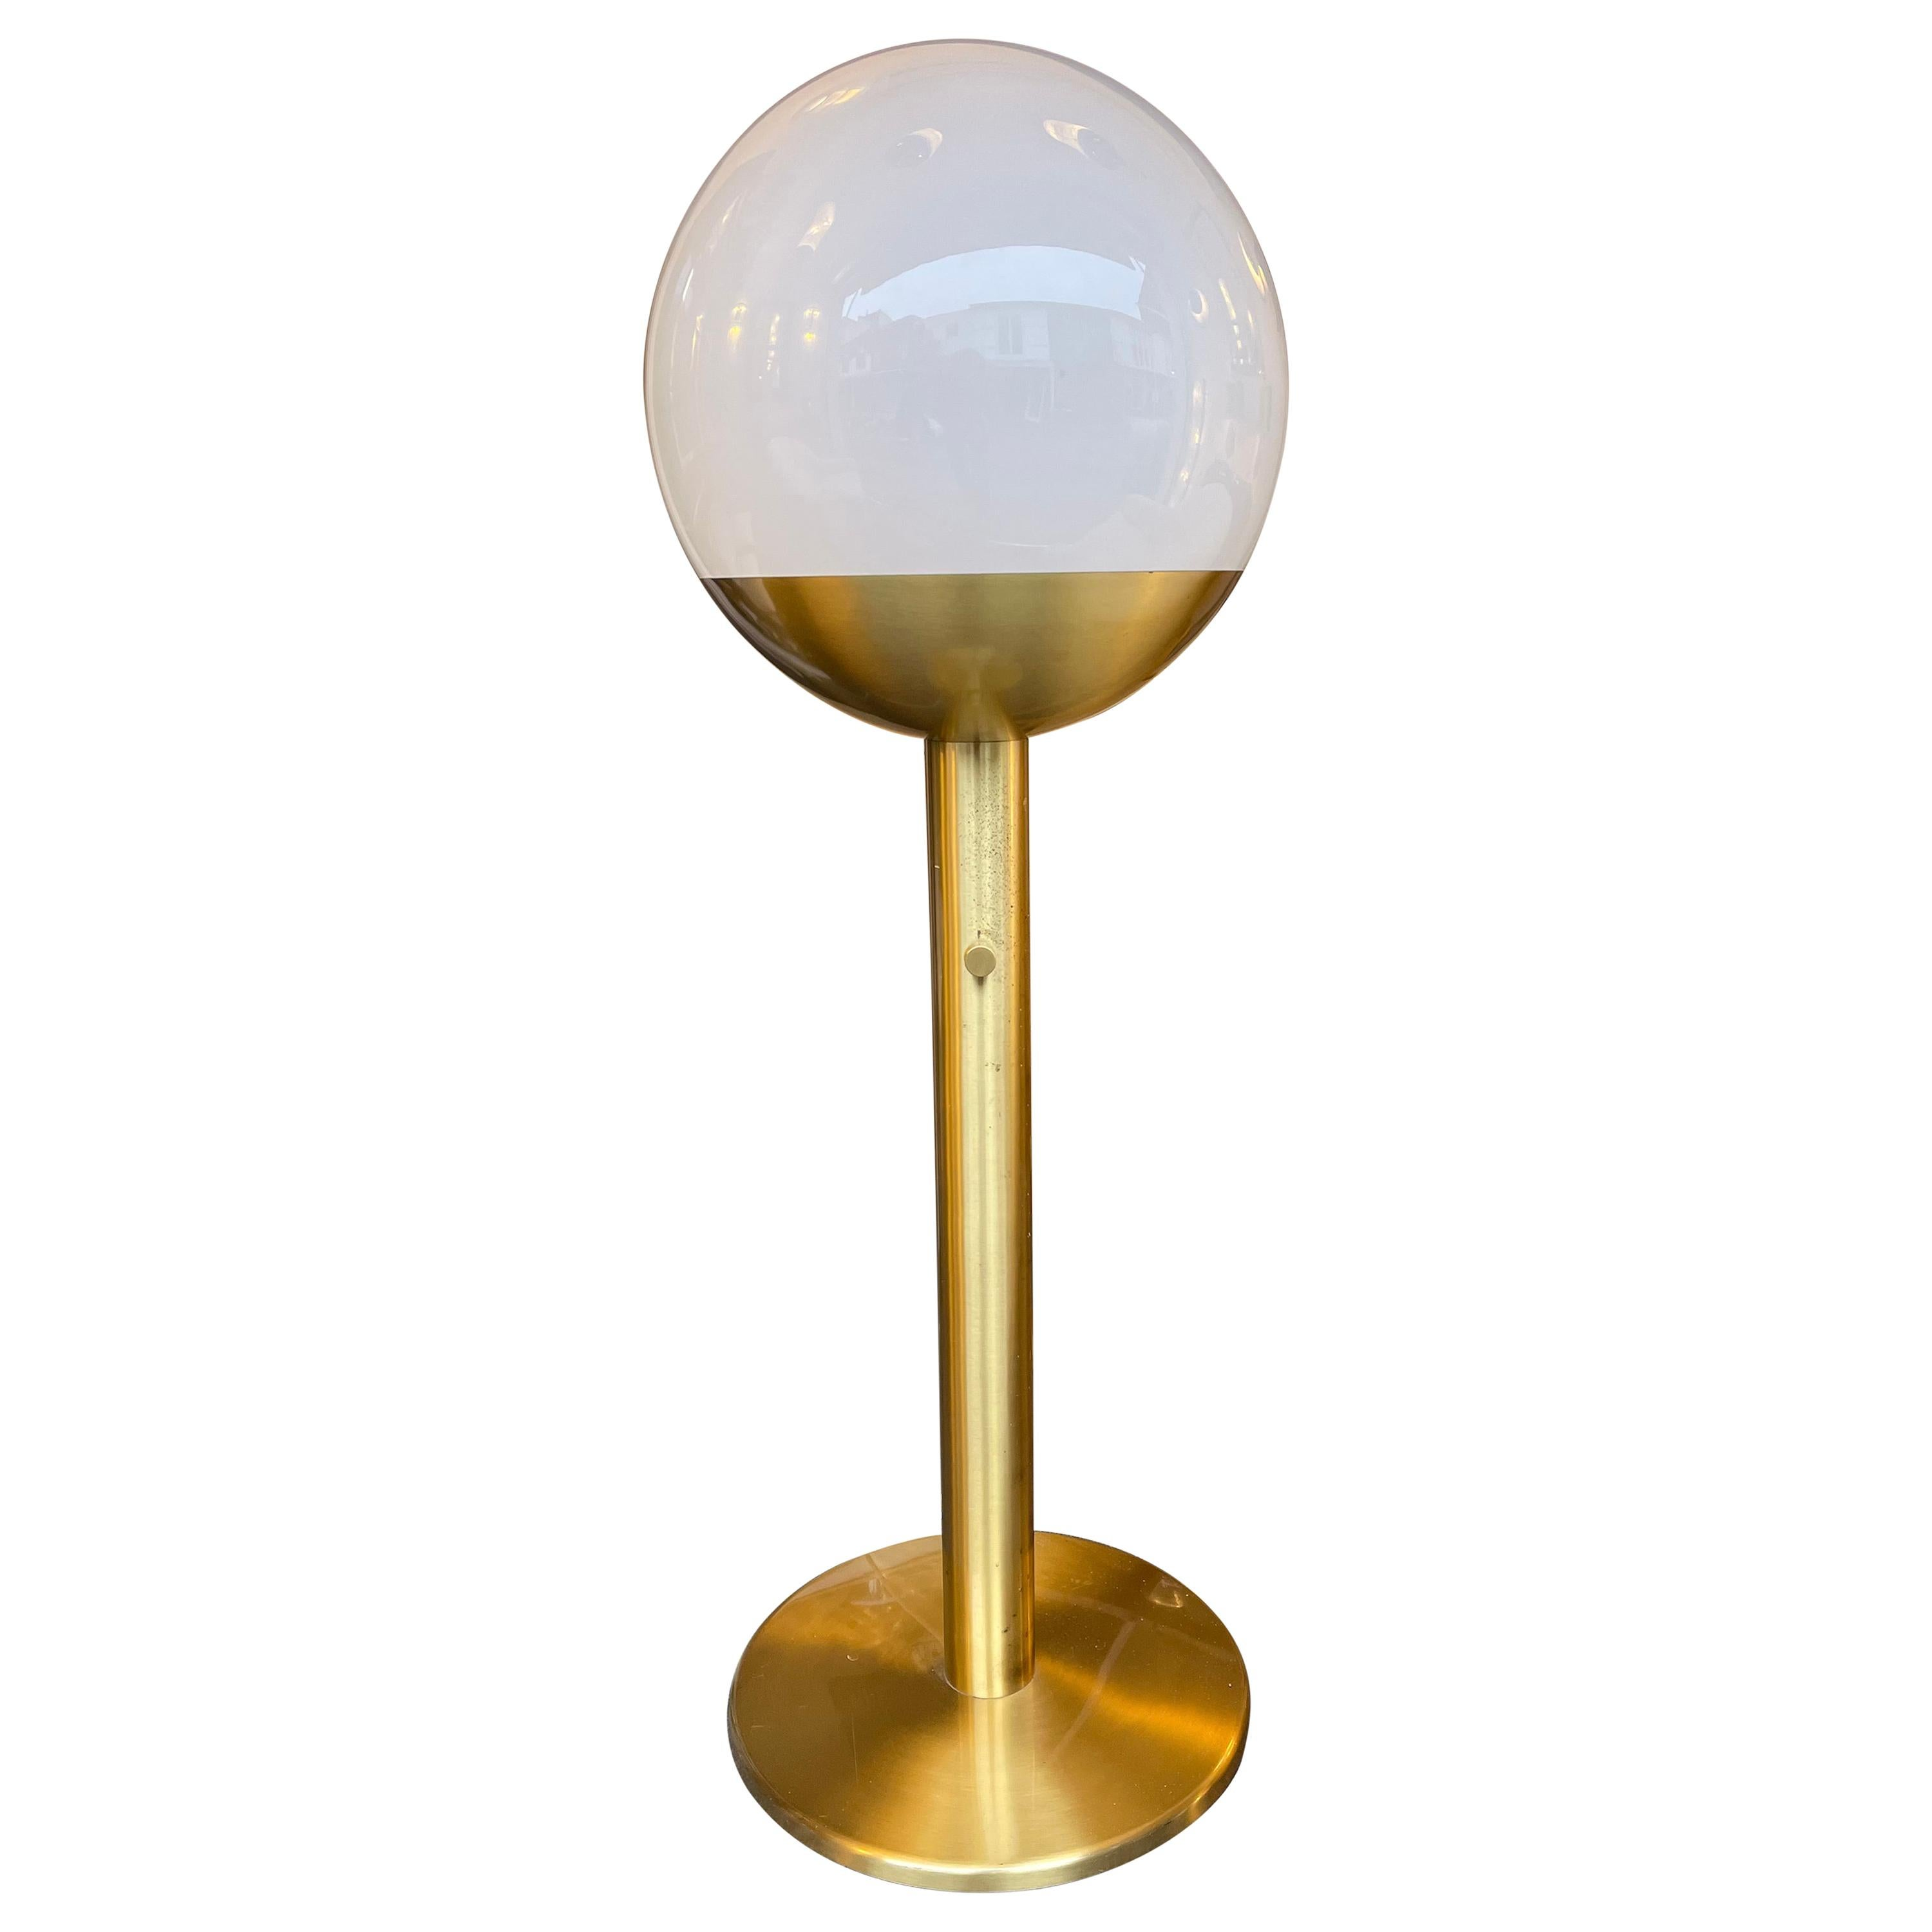 Brass and Glass Floor Lamp P428 by Pia Guidetti Crippa for Luci, Italy, 1970s